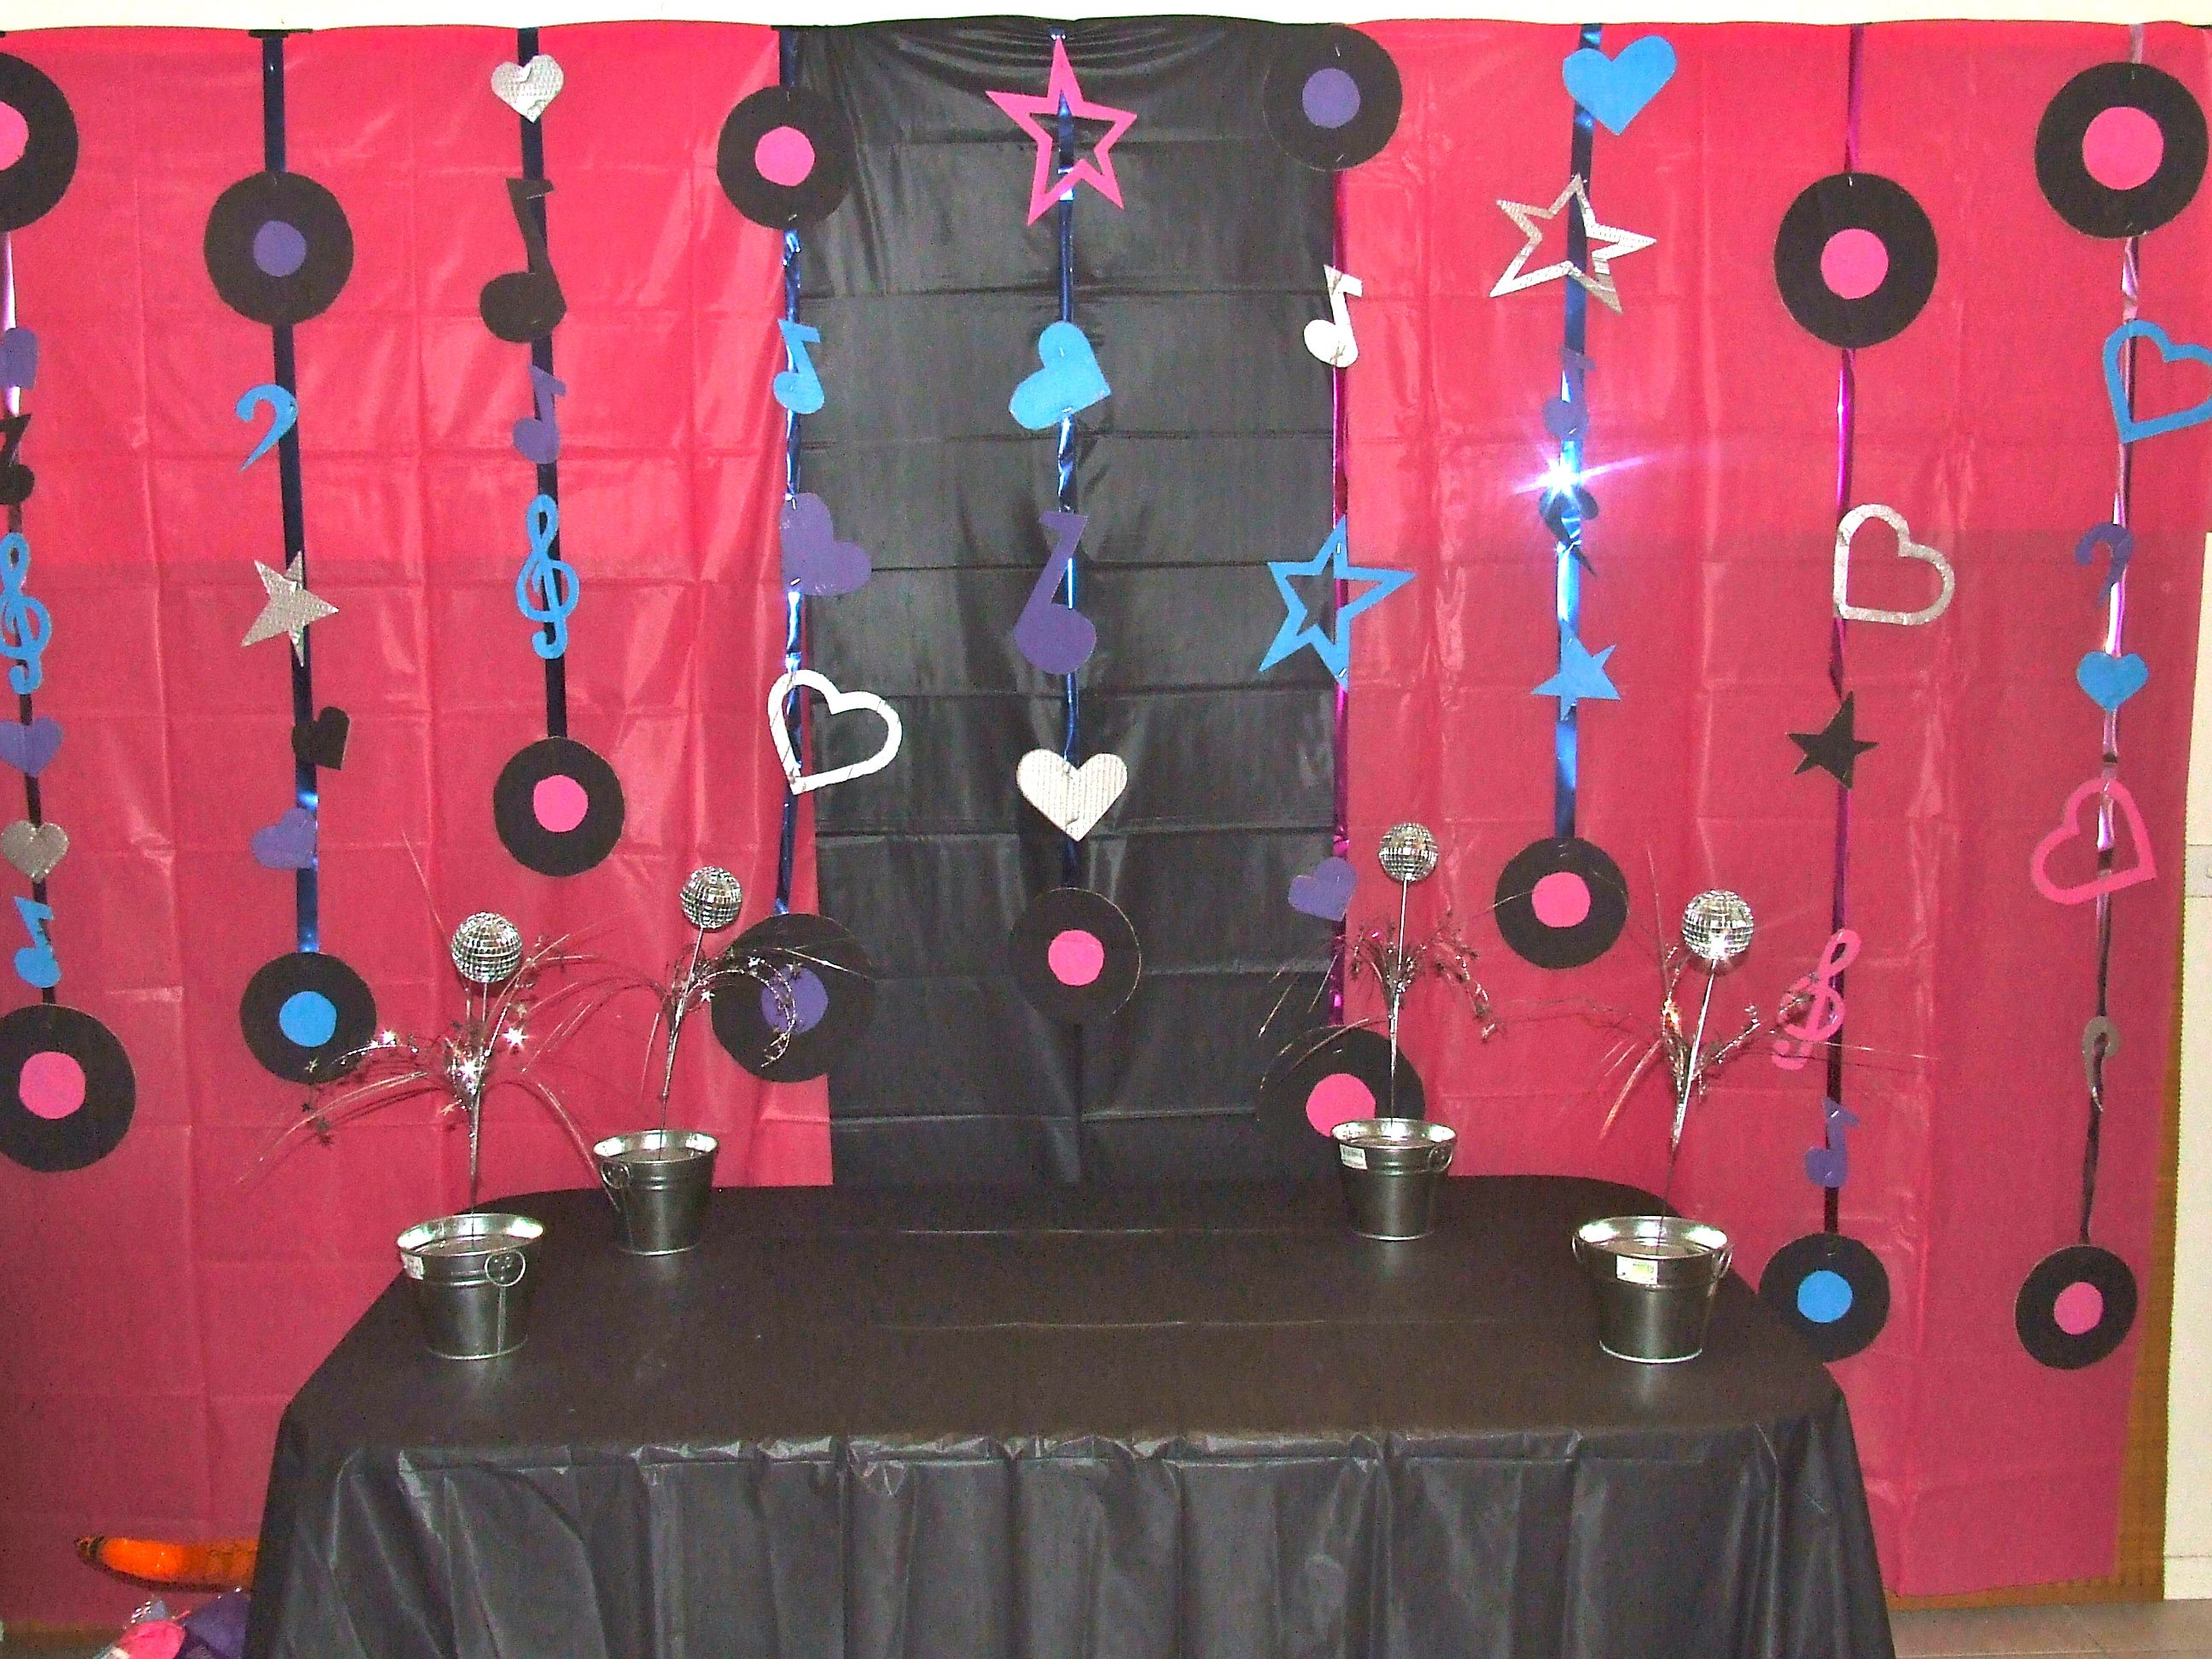 POP STAR PARTY - Decorations; Hot pink and black plastic table cloths hung around the room and covering tables. Assorted painted musical shapes hung on ... & POP STAR PARTY - Decorations; Hot pink and black plastic table ...